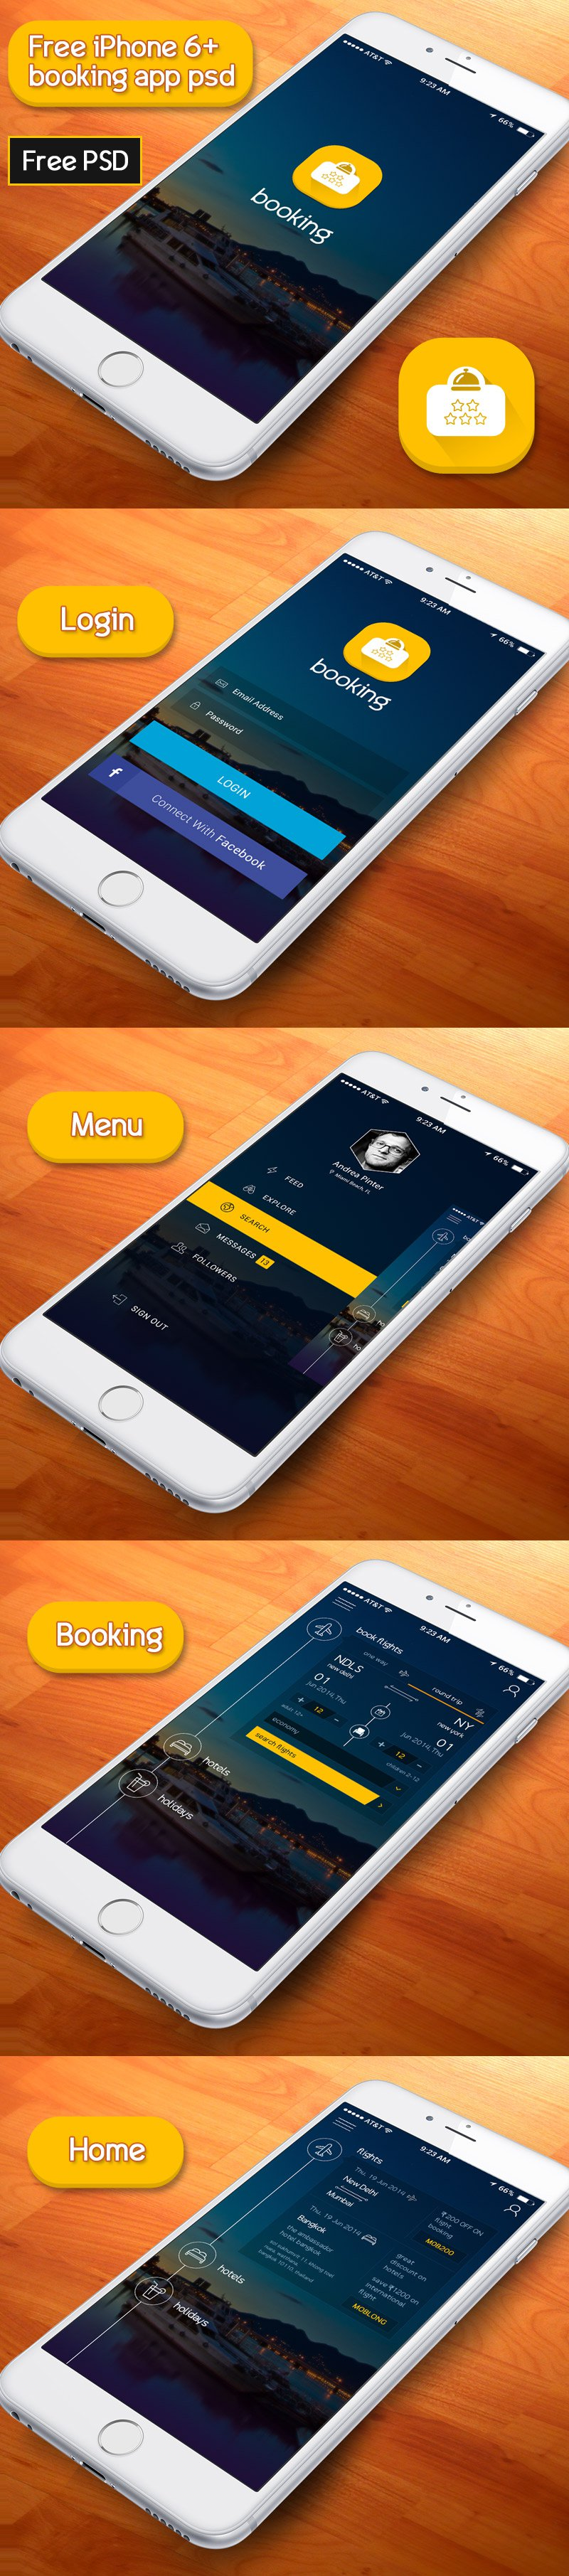 Free Booking App PSD According to iPhone 6